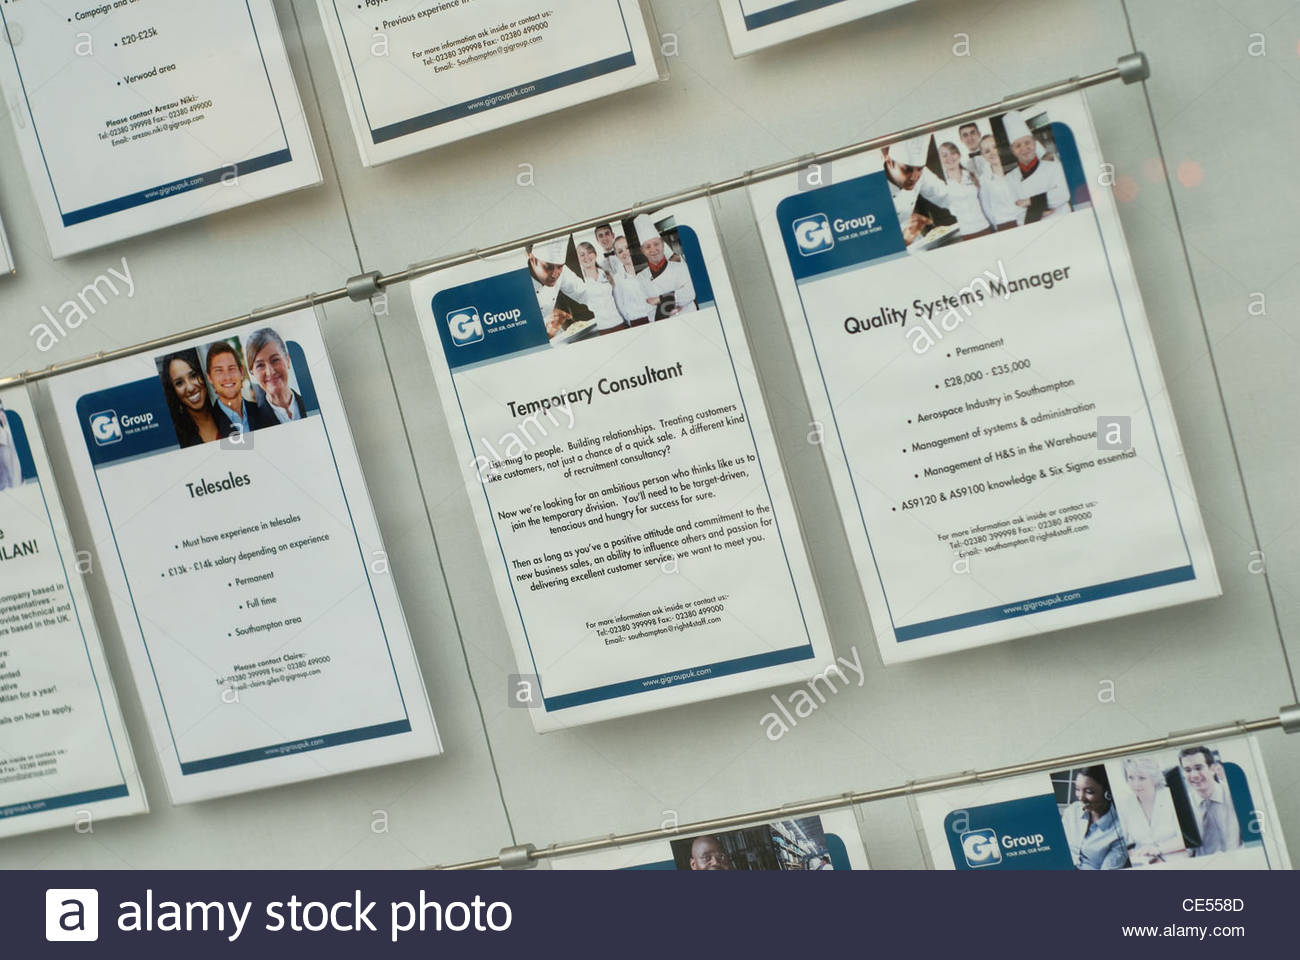 Southampton , UK Employment agency window with situations vacant - Stock Image